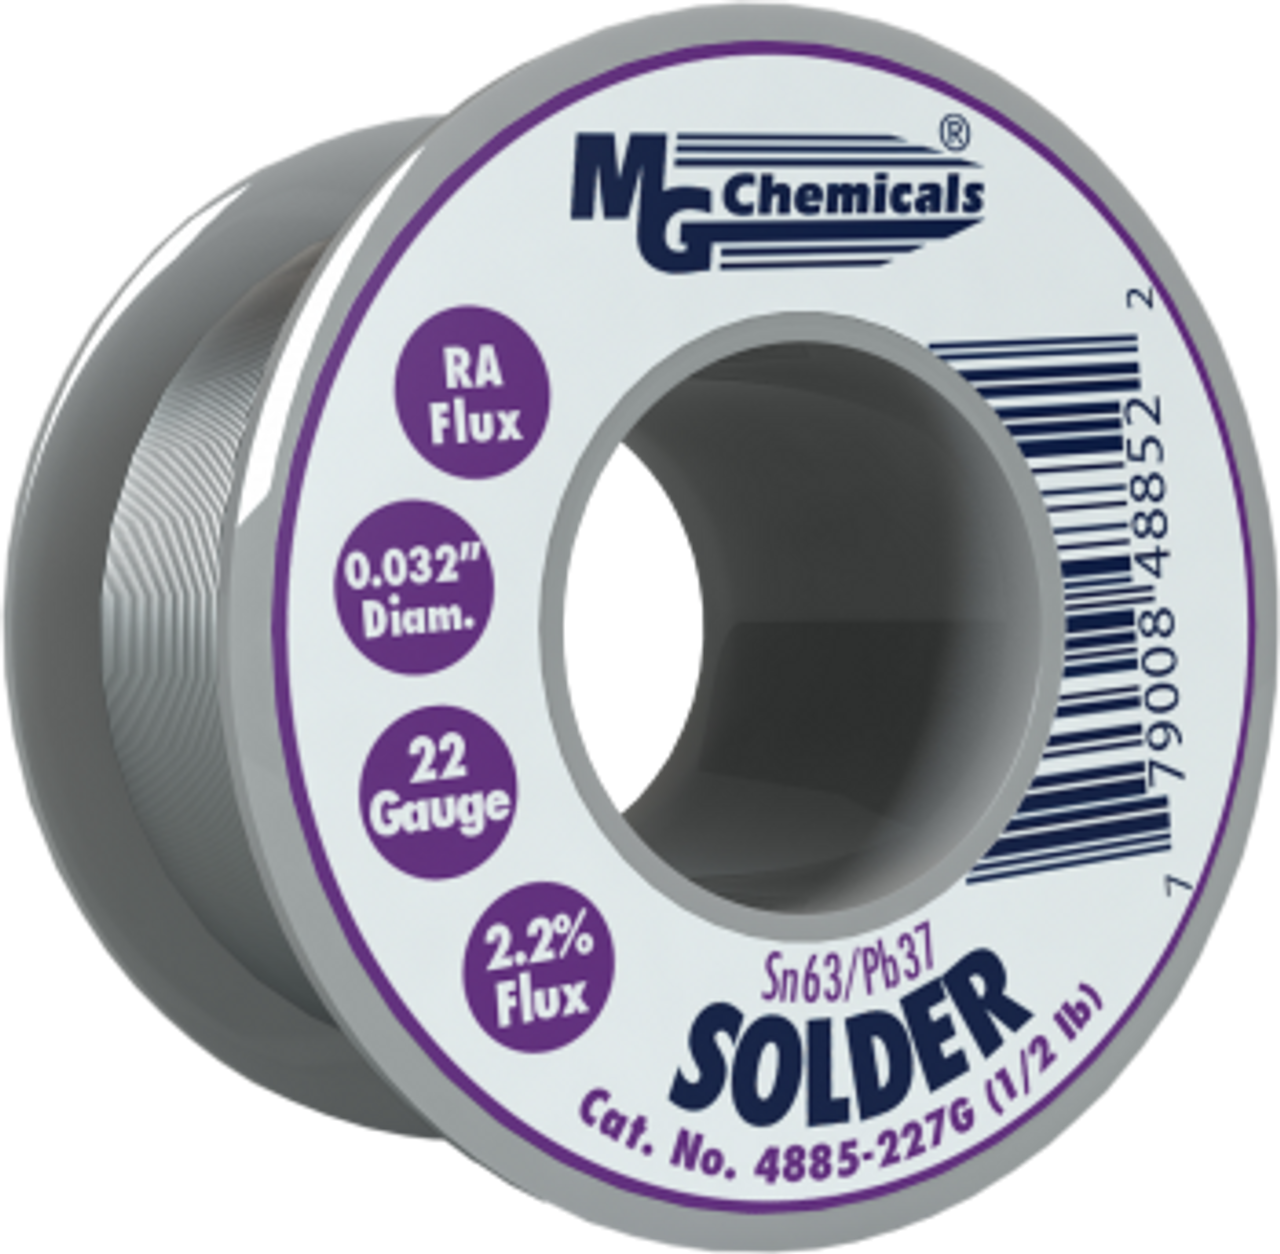 "MG Chemicals - Solder (Sn63/Pb37 0.5lbs 0.032"")"